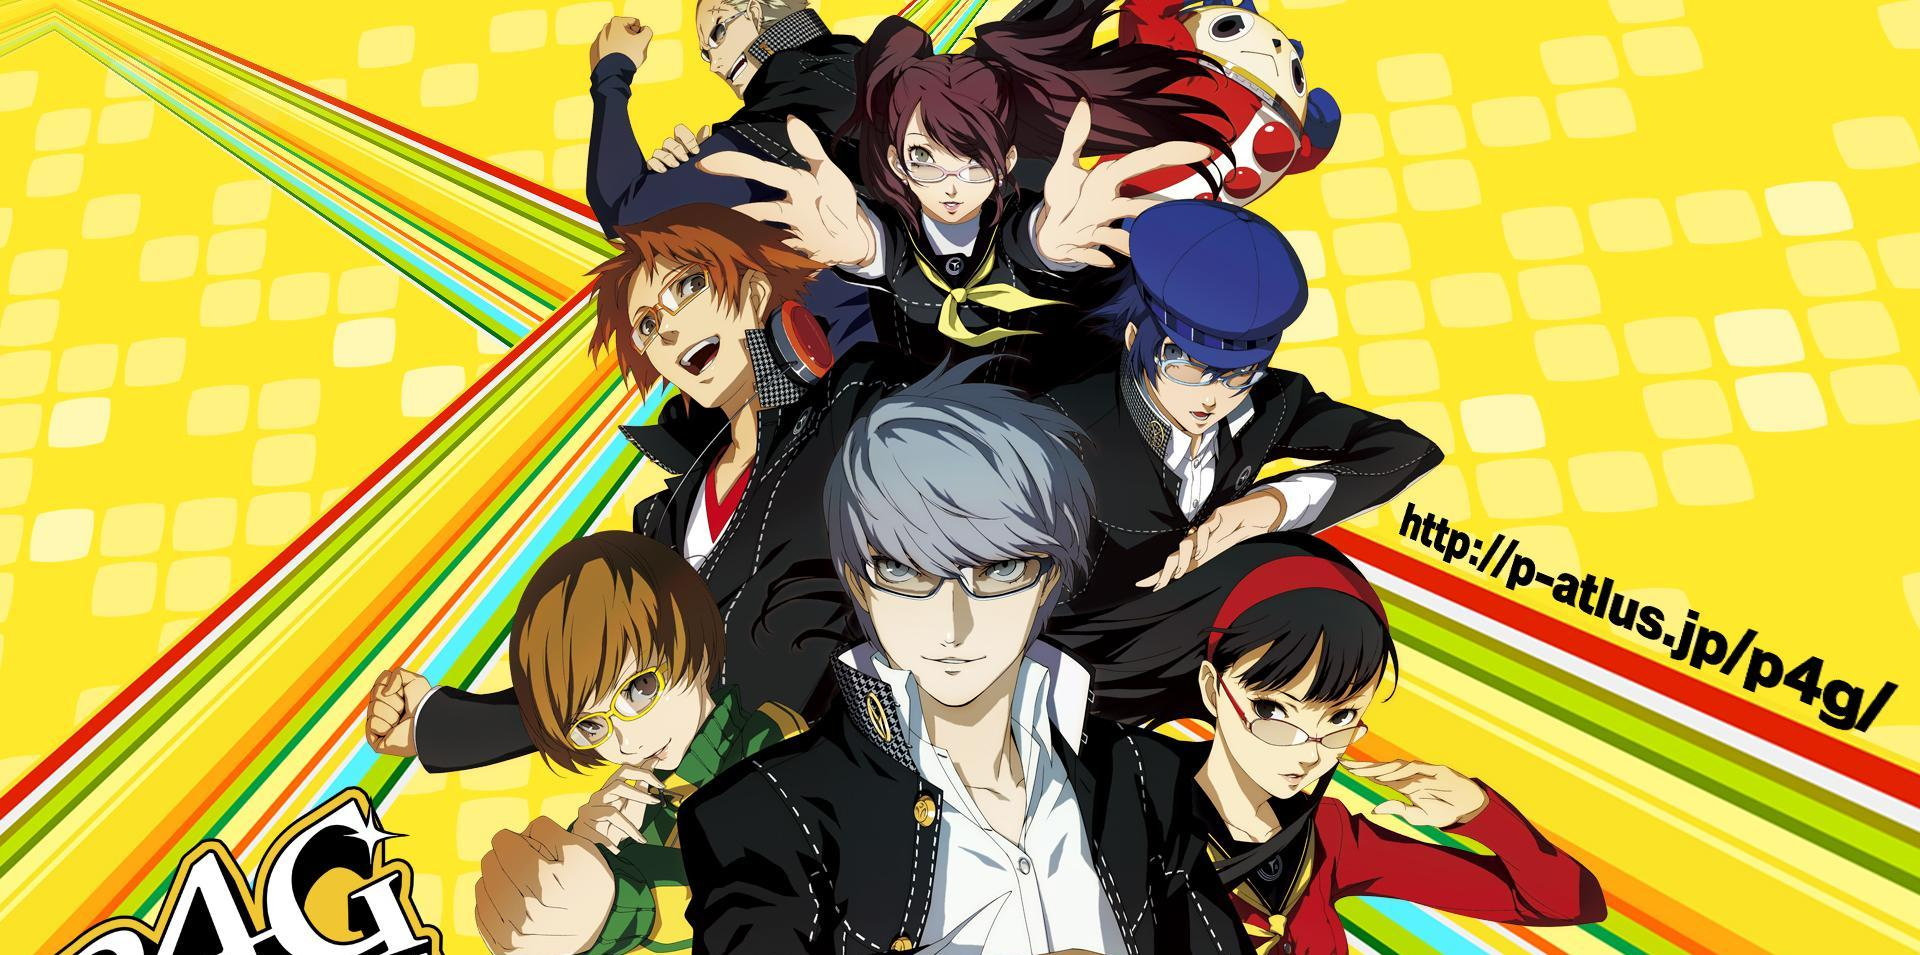 Xem phim Persona 4 The Golden Animation: Thank you Mr. Accomplice - Persona 4 The Golden Animation: Another End Vietsub